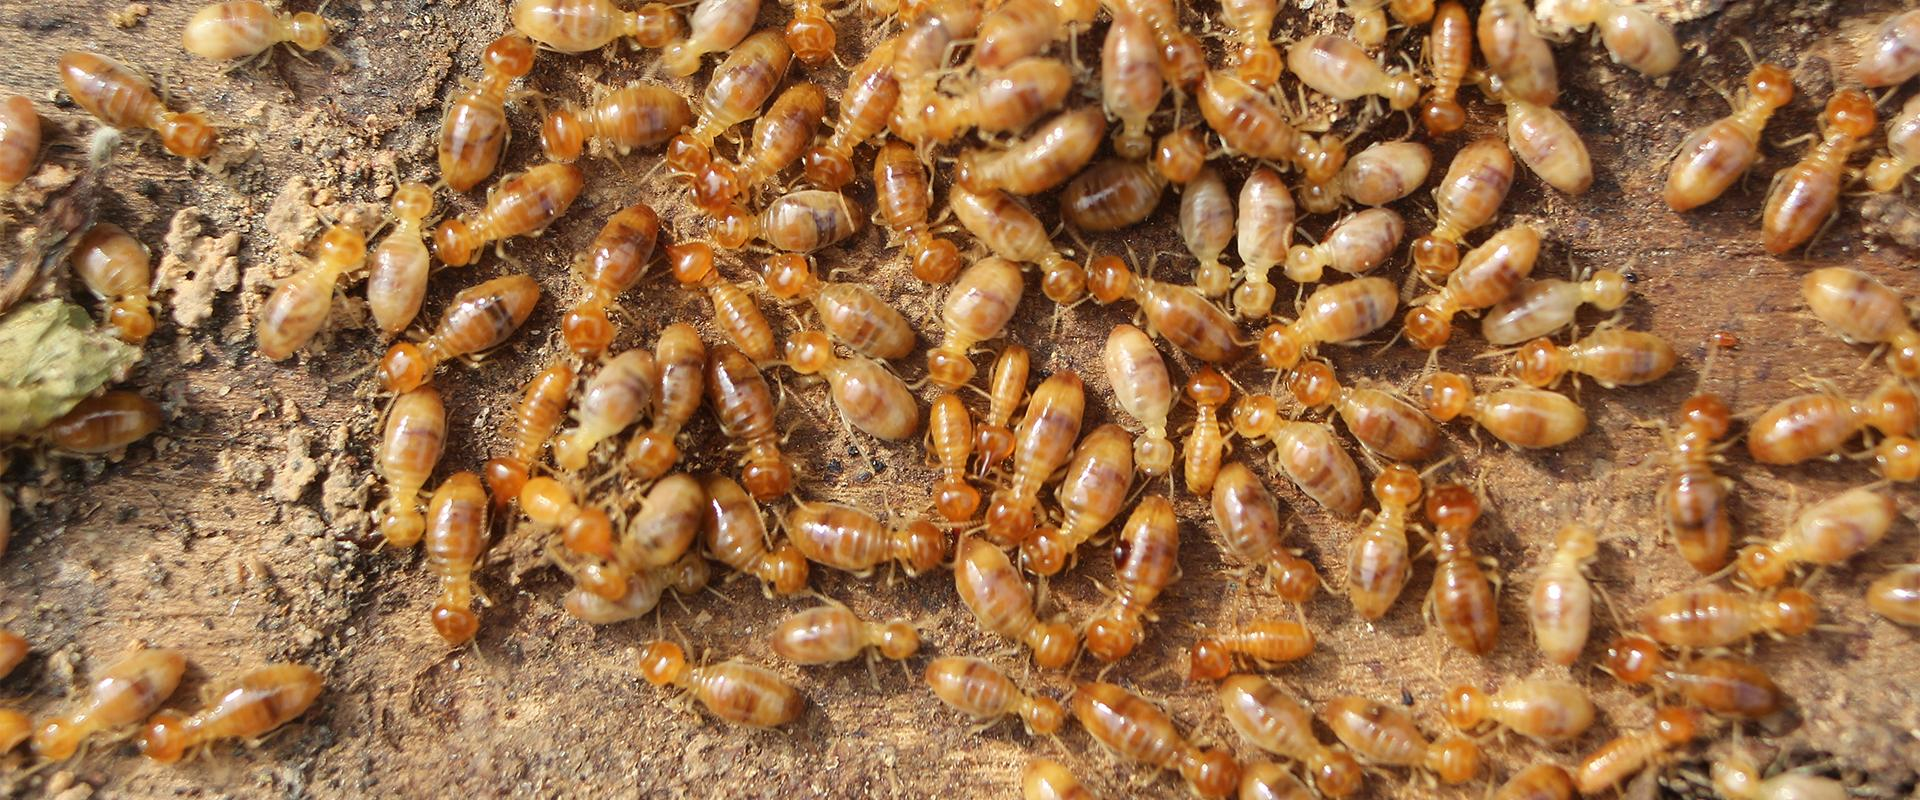 close up of termites on wood